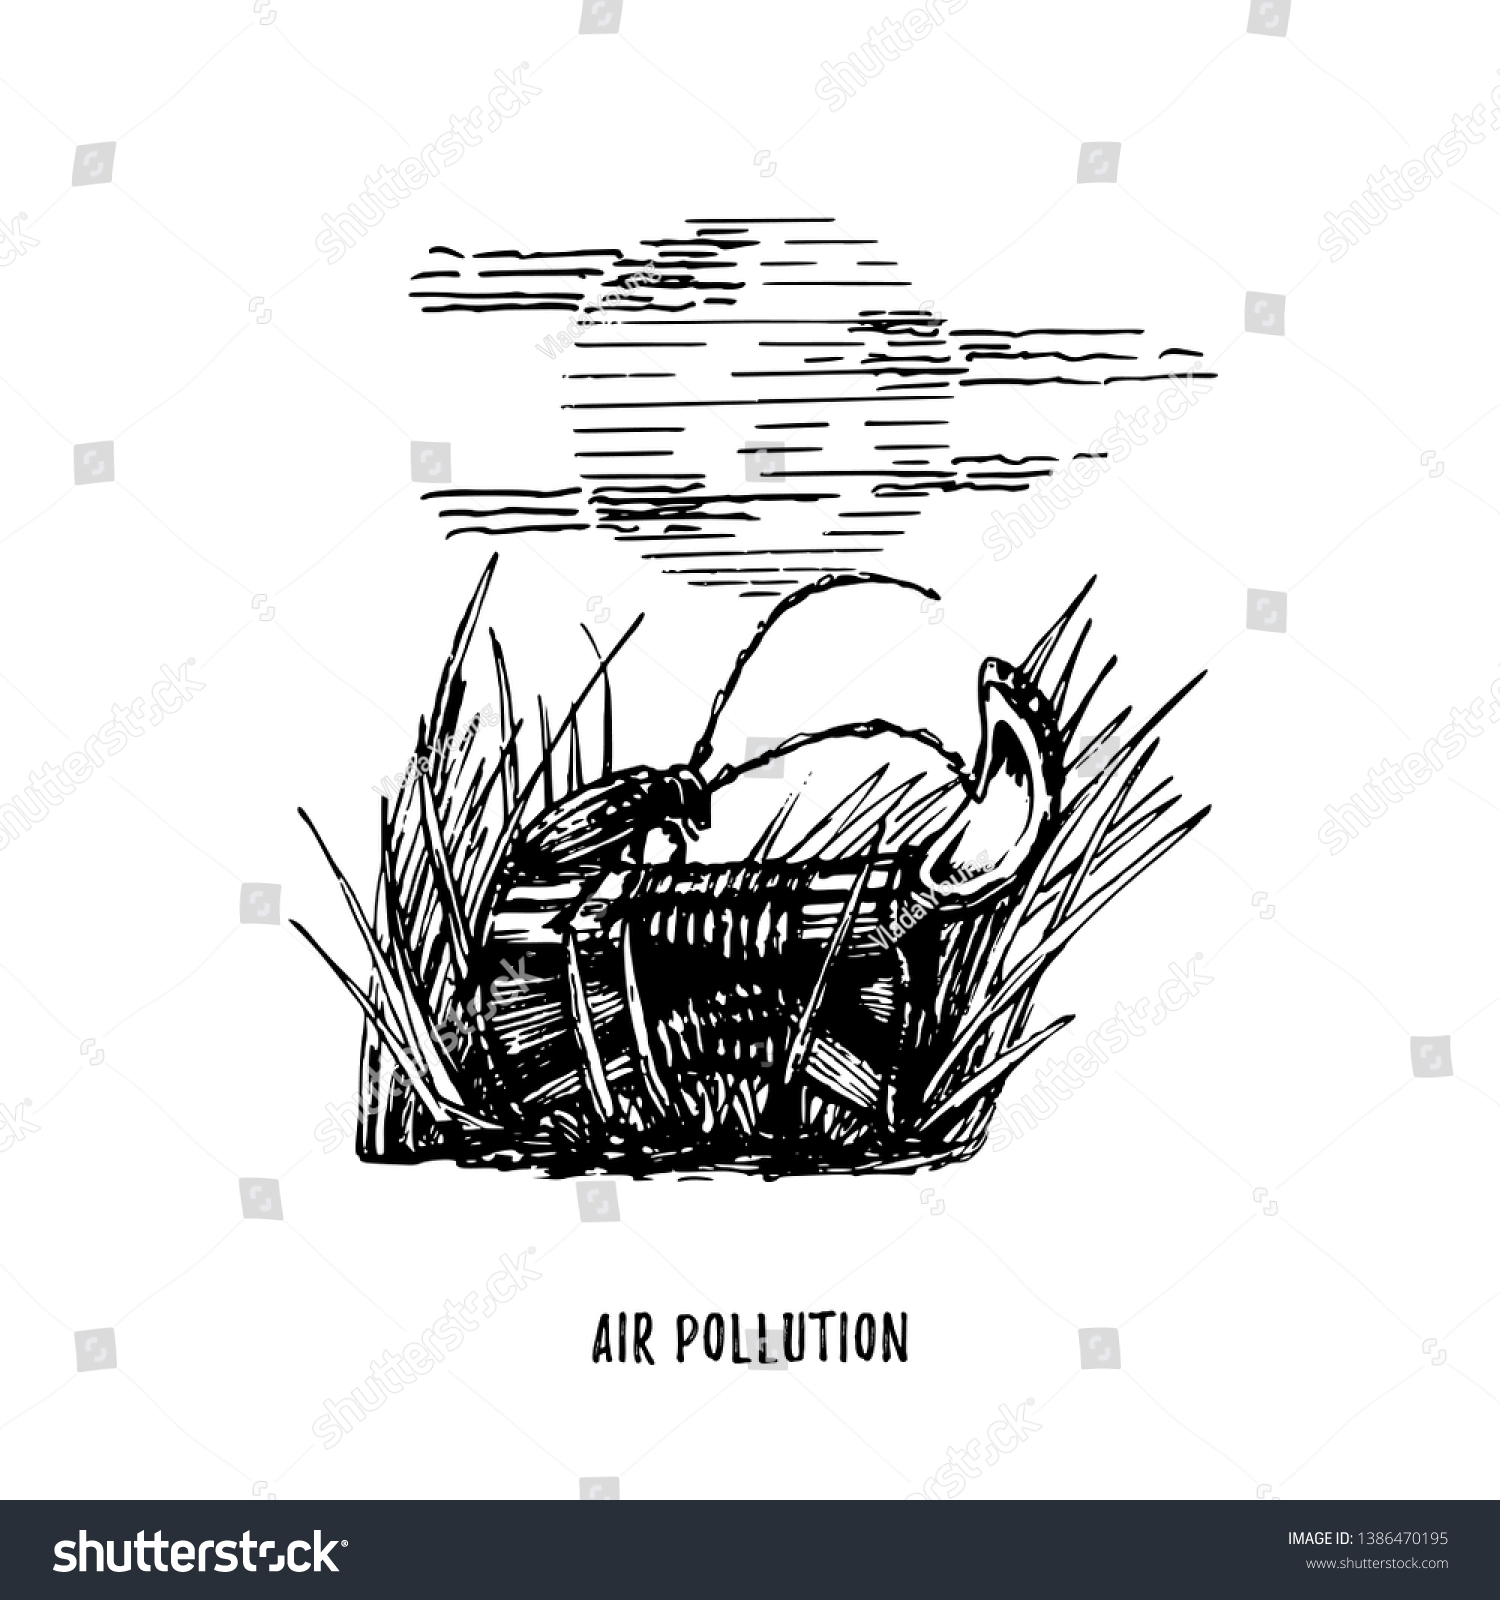 Air pollution illustration drawn sketch of contamination environment theme drawing of beetle is on